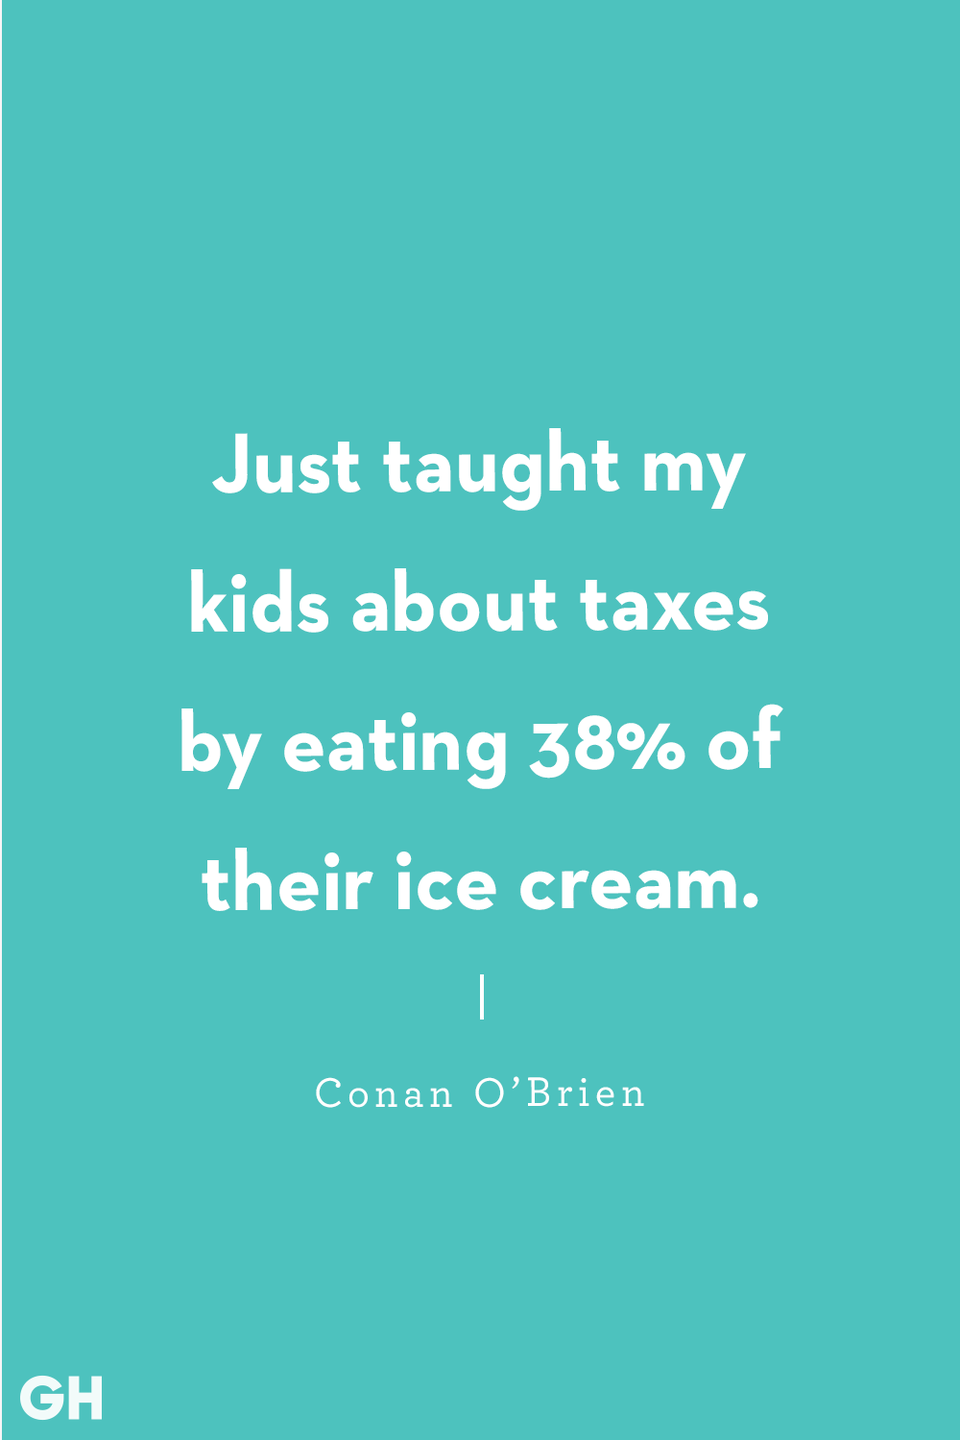 <p>Just taught my kids about taxes by eating 38% of their ice cream.</p>